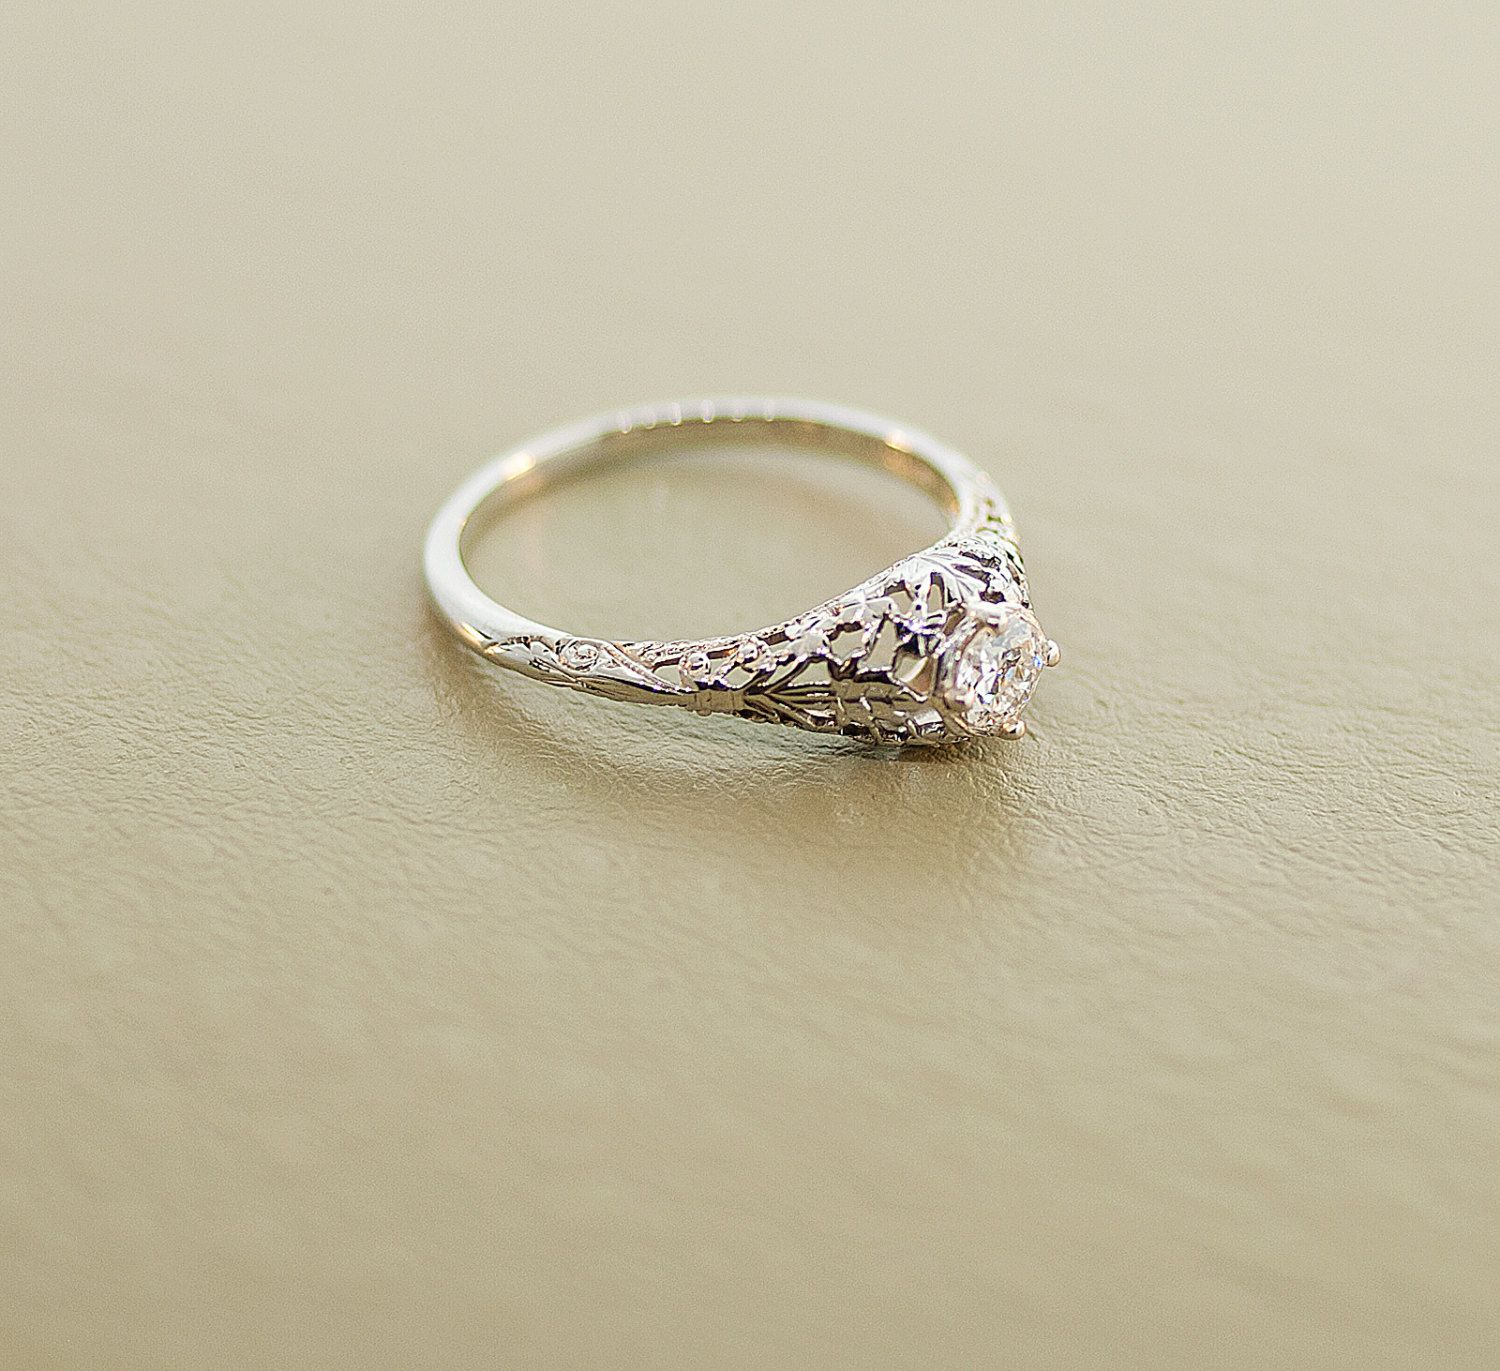 1920's Engagement Ring 18k White Gold and Diamond